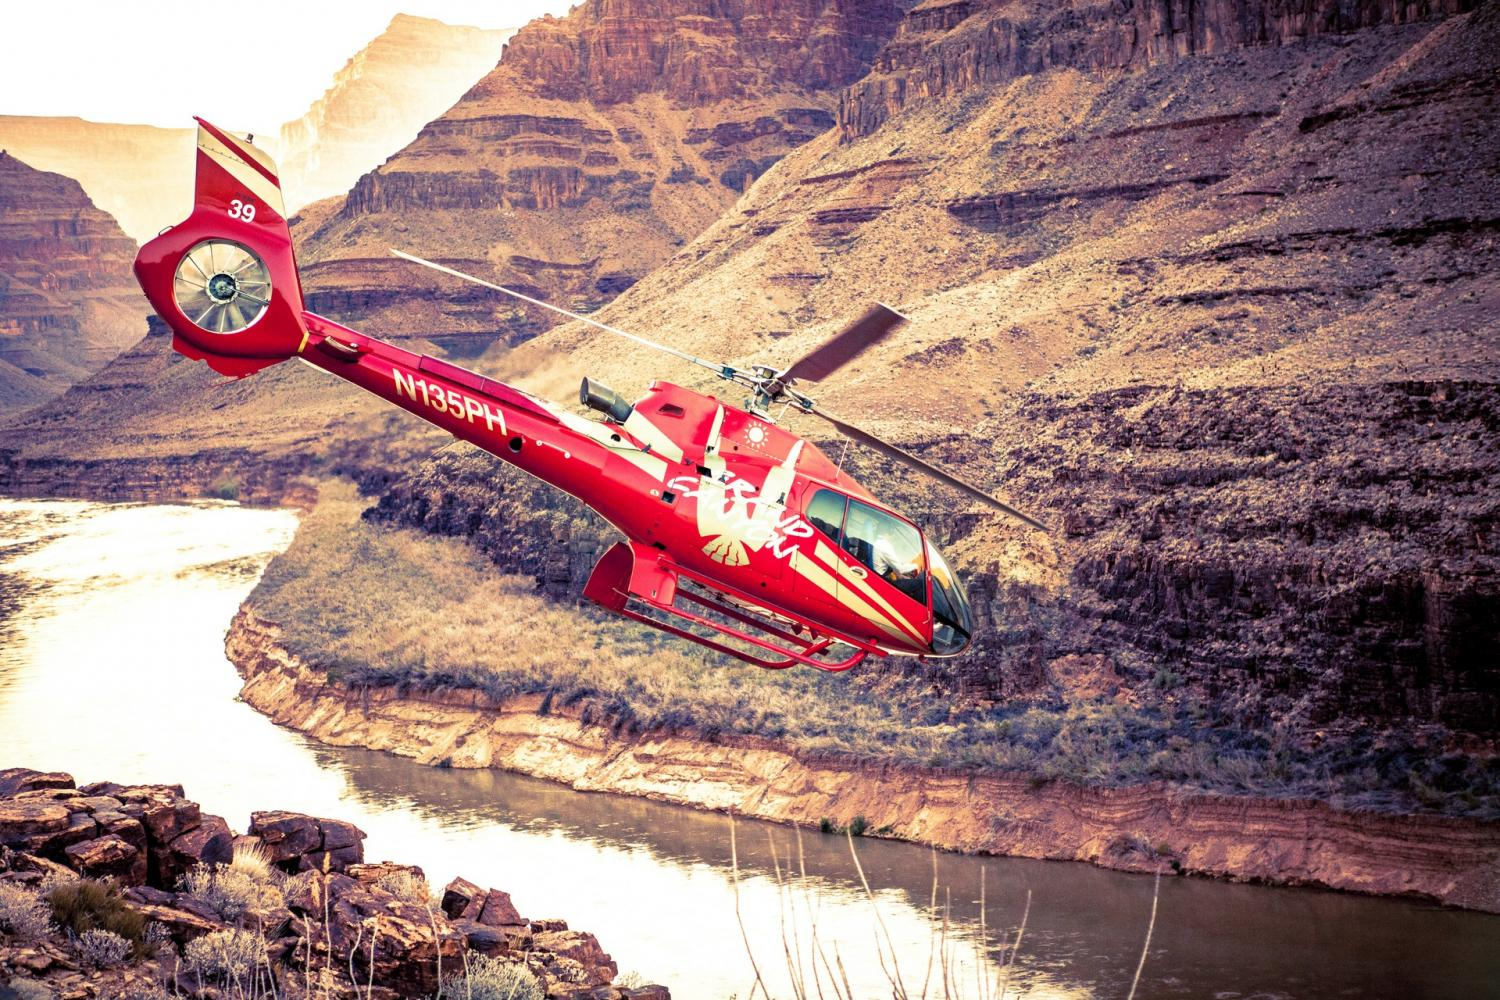 Grand Canyon South Rim Bus Tours with Helicopter Ride